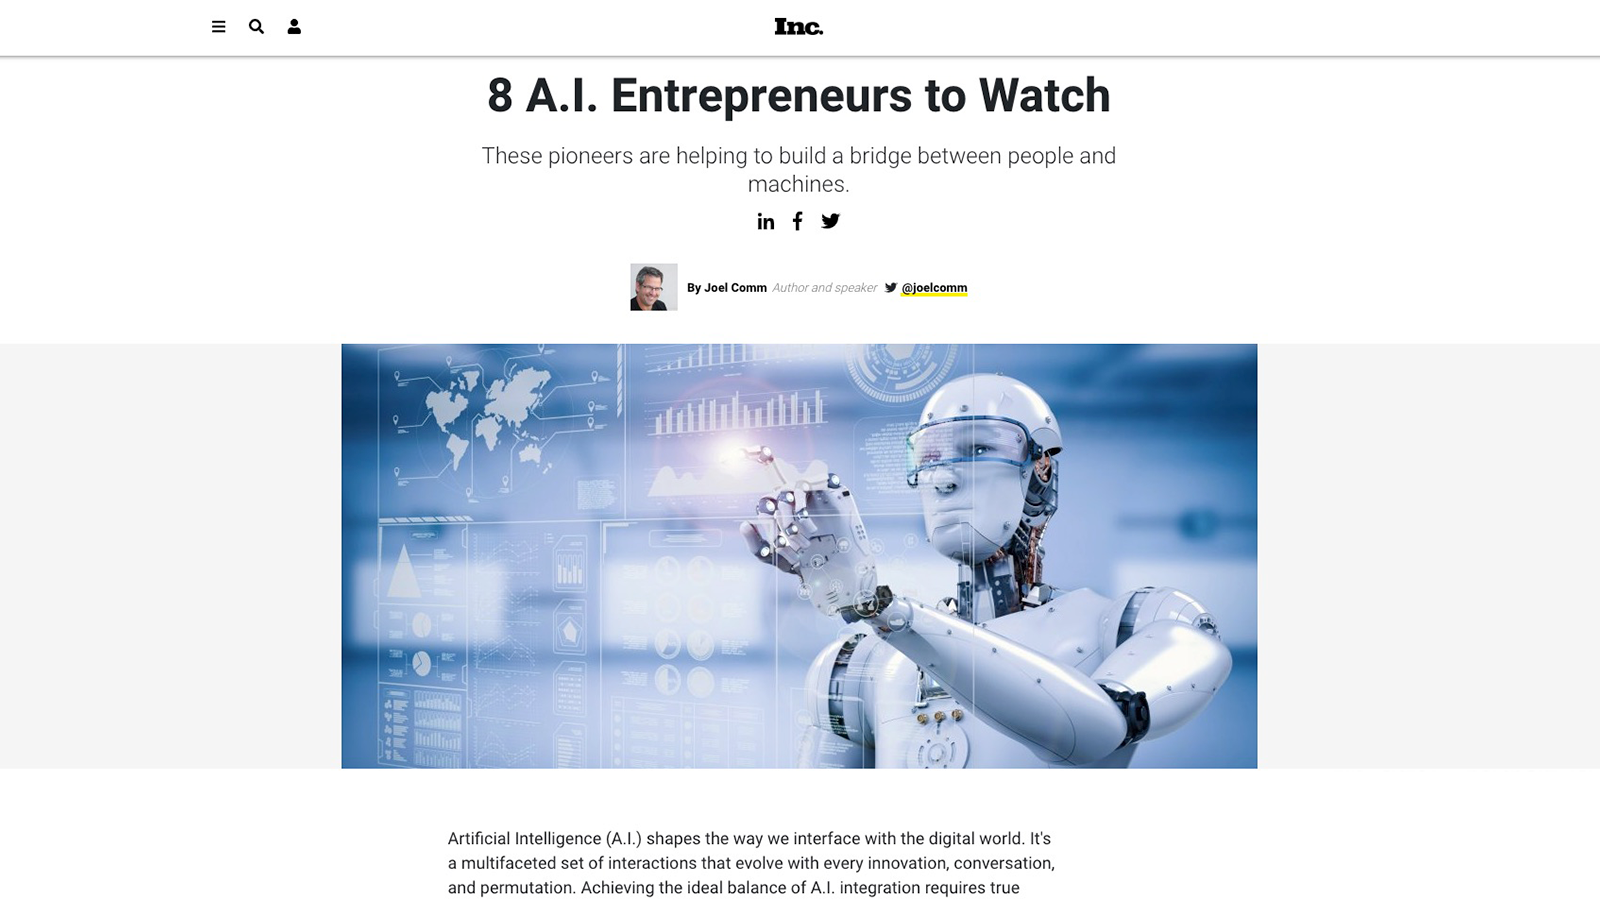 Rana Gujral Behavioral Signals CEO was named one of the 8 AIEntrepreneurs to Watch by Inc